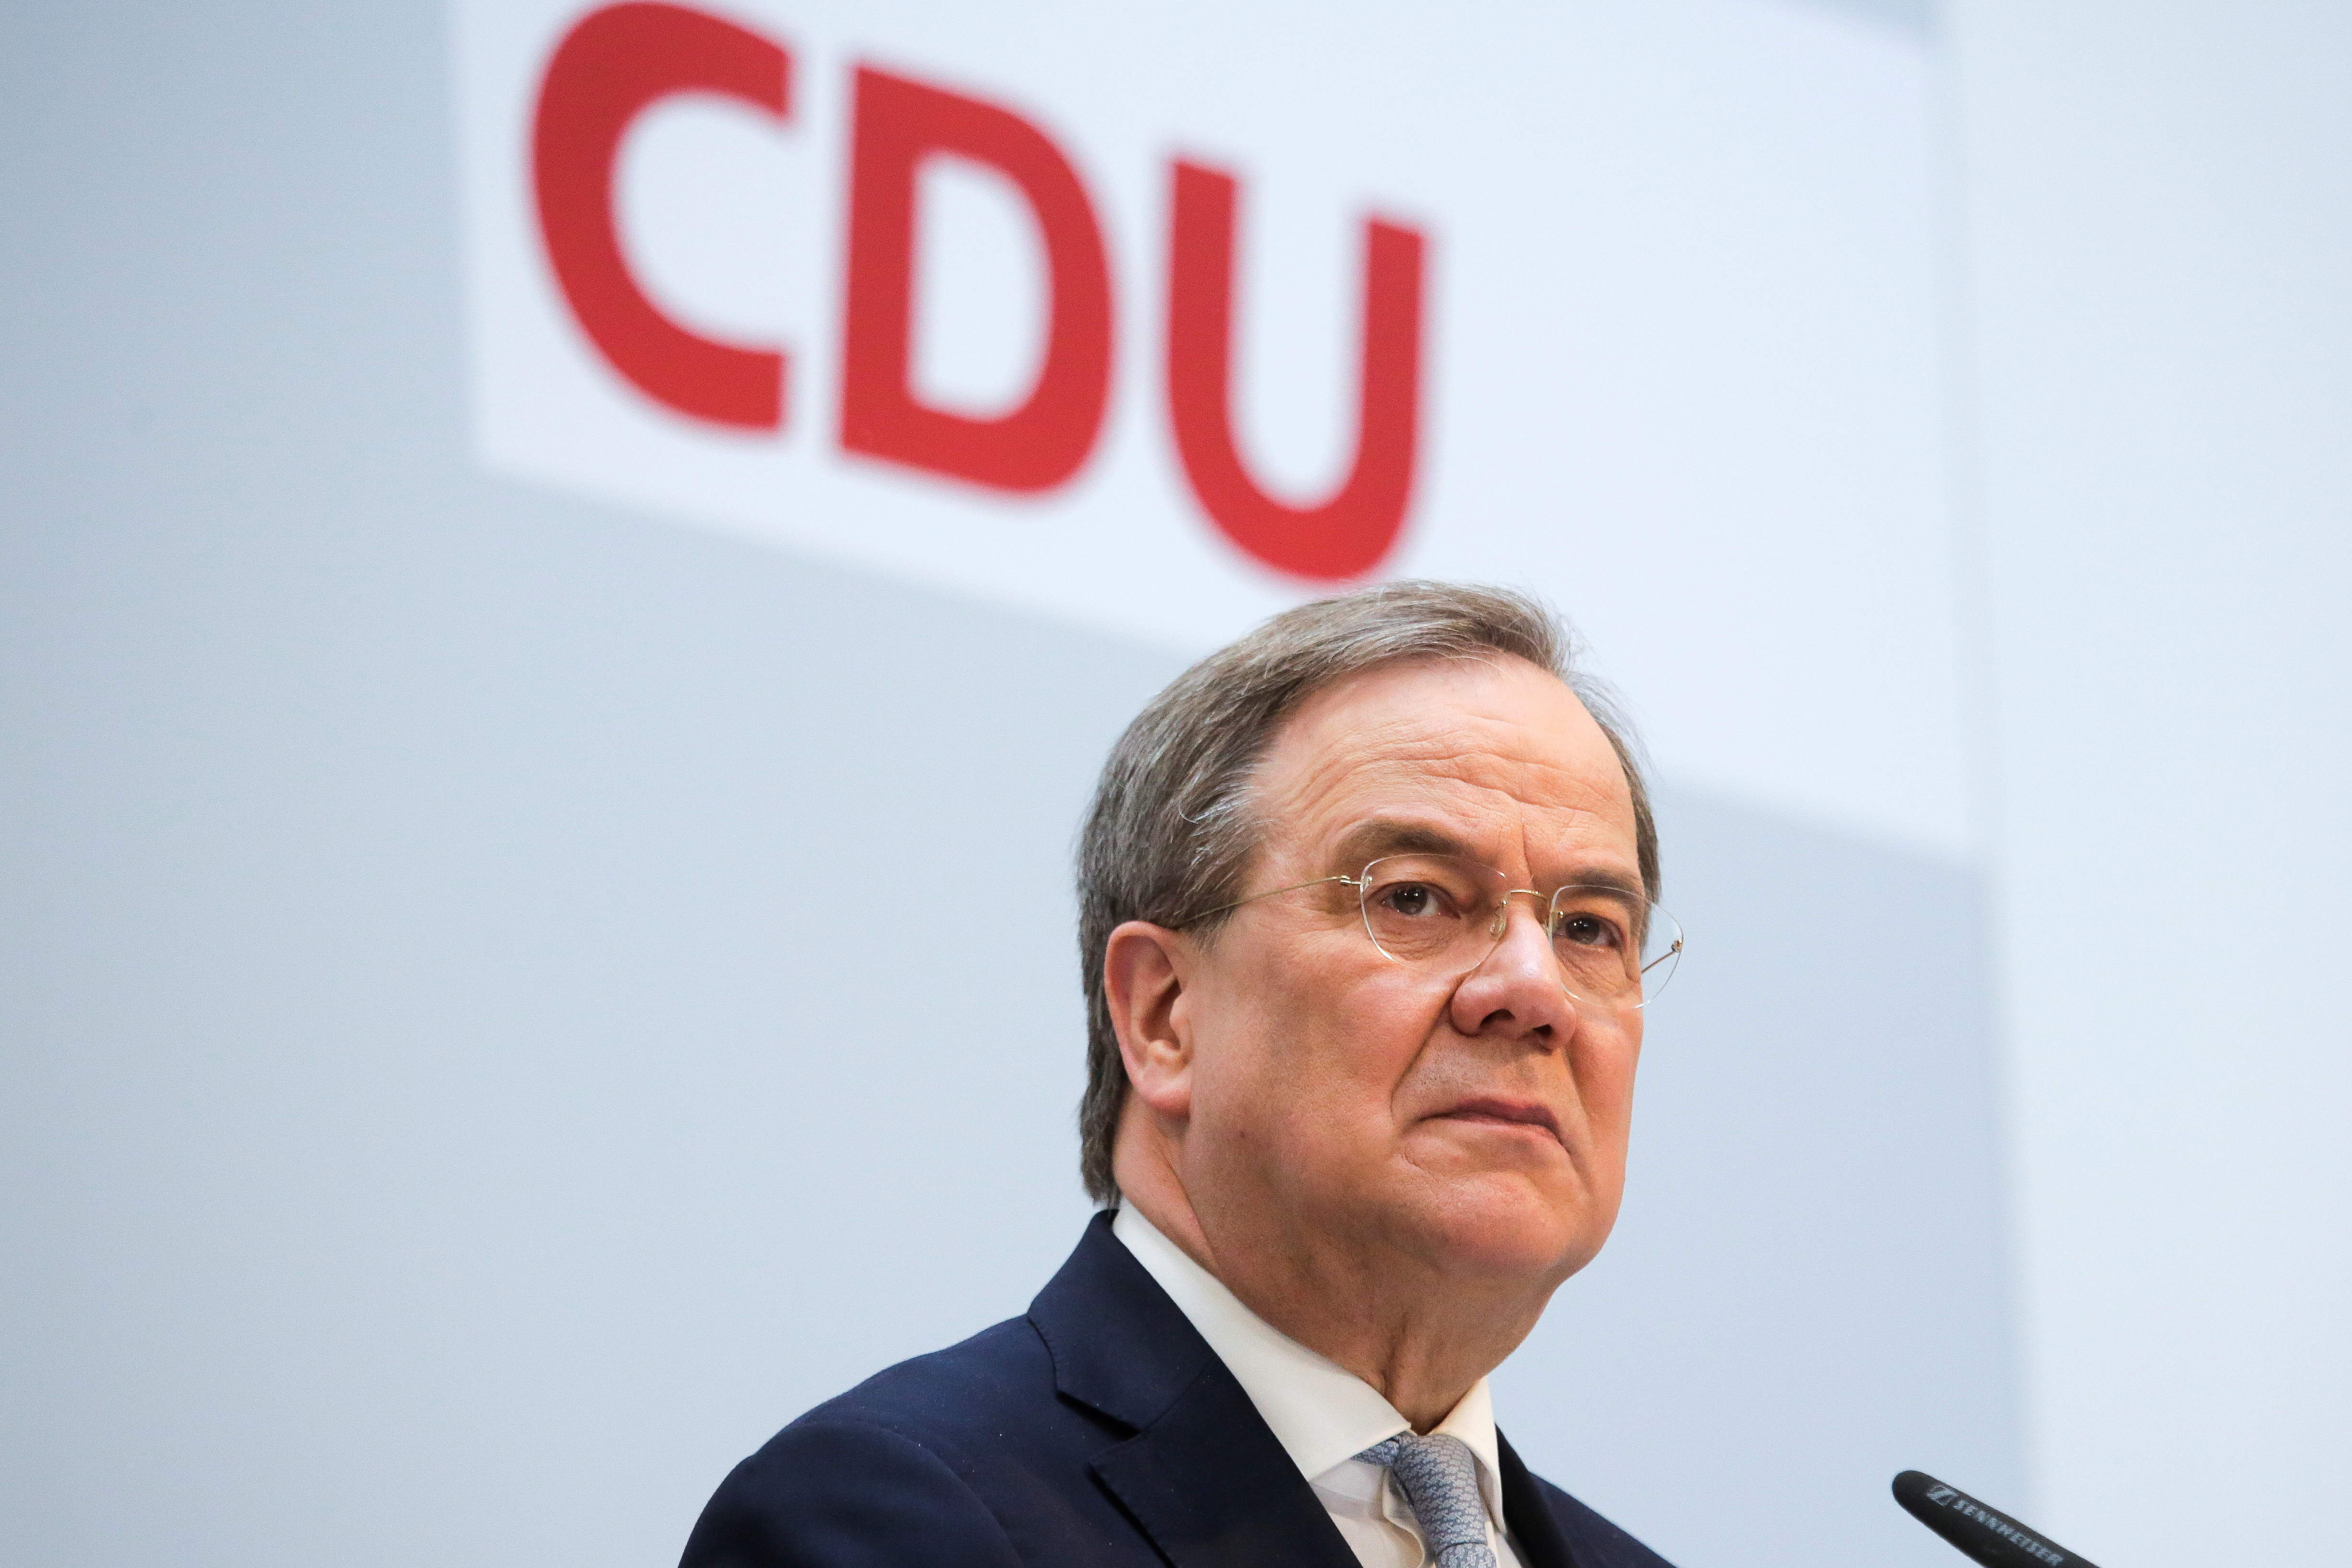 German Christian Democratic Union Party Leader Armin Laschet briefs the media after a meeting of the party's board at the headquarters in Berlin, Germany, April 12, 2021. Markus Schreiber/Pool via Reuters